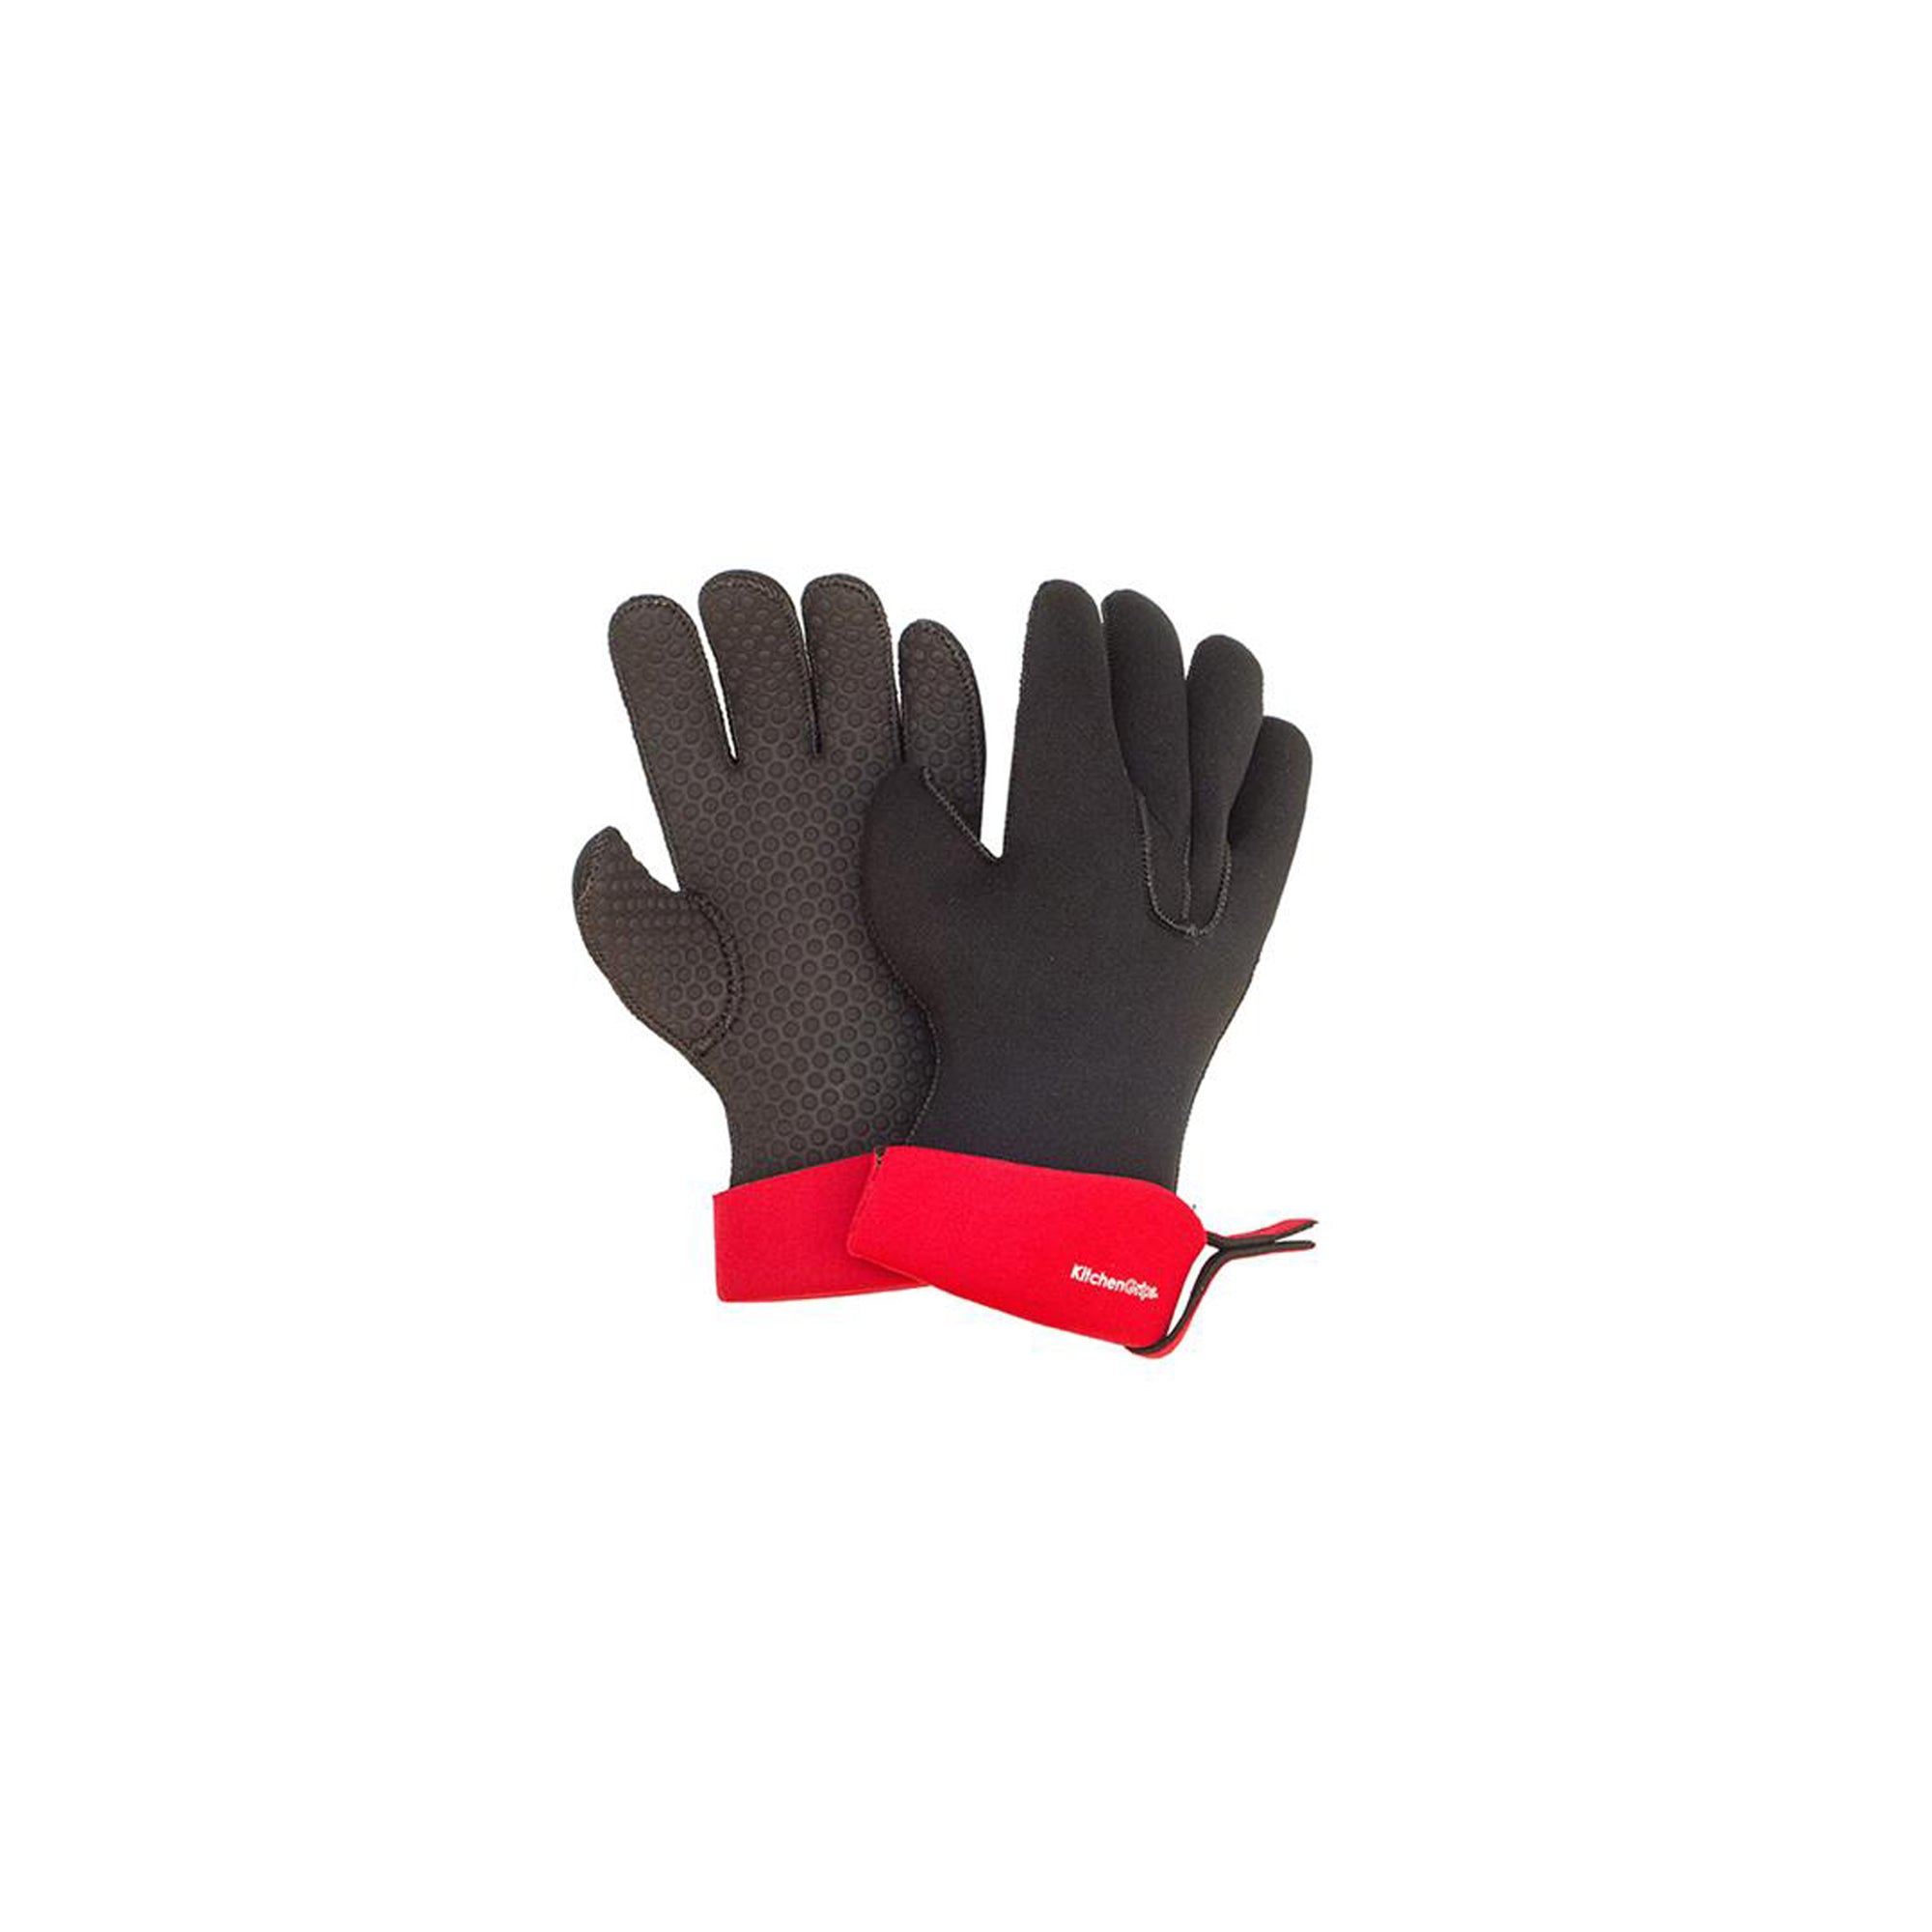 Chef's Glove 5 Finger